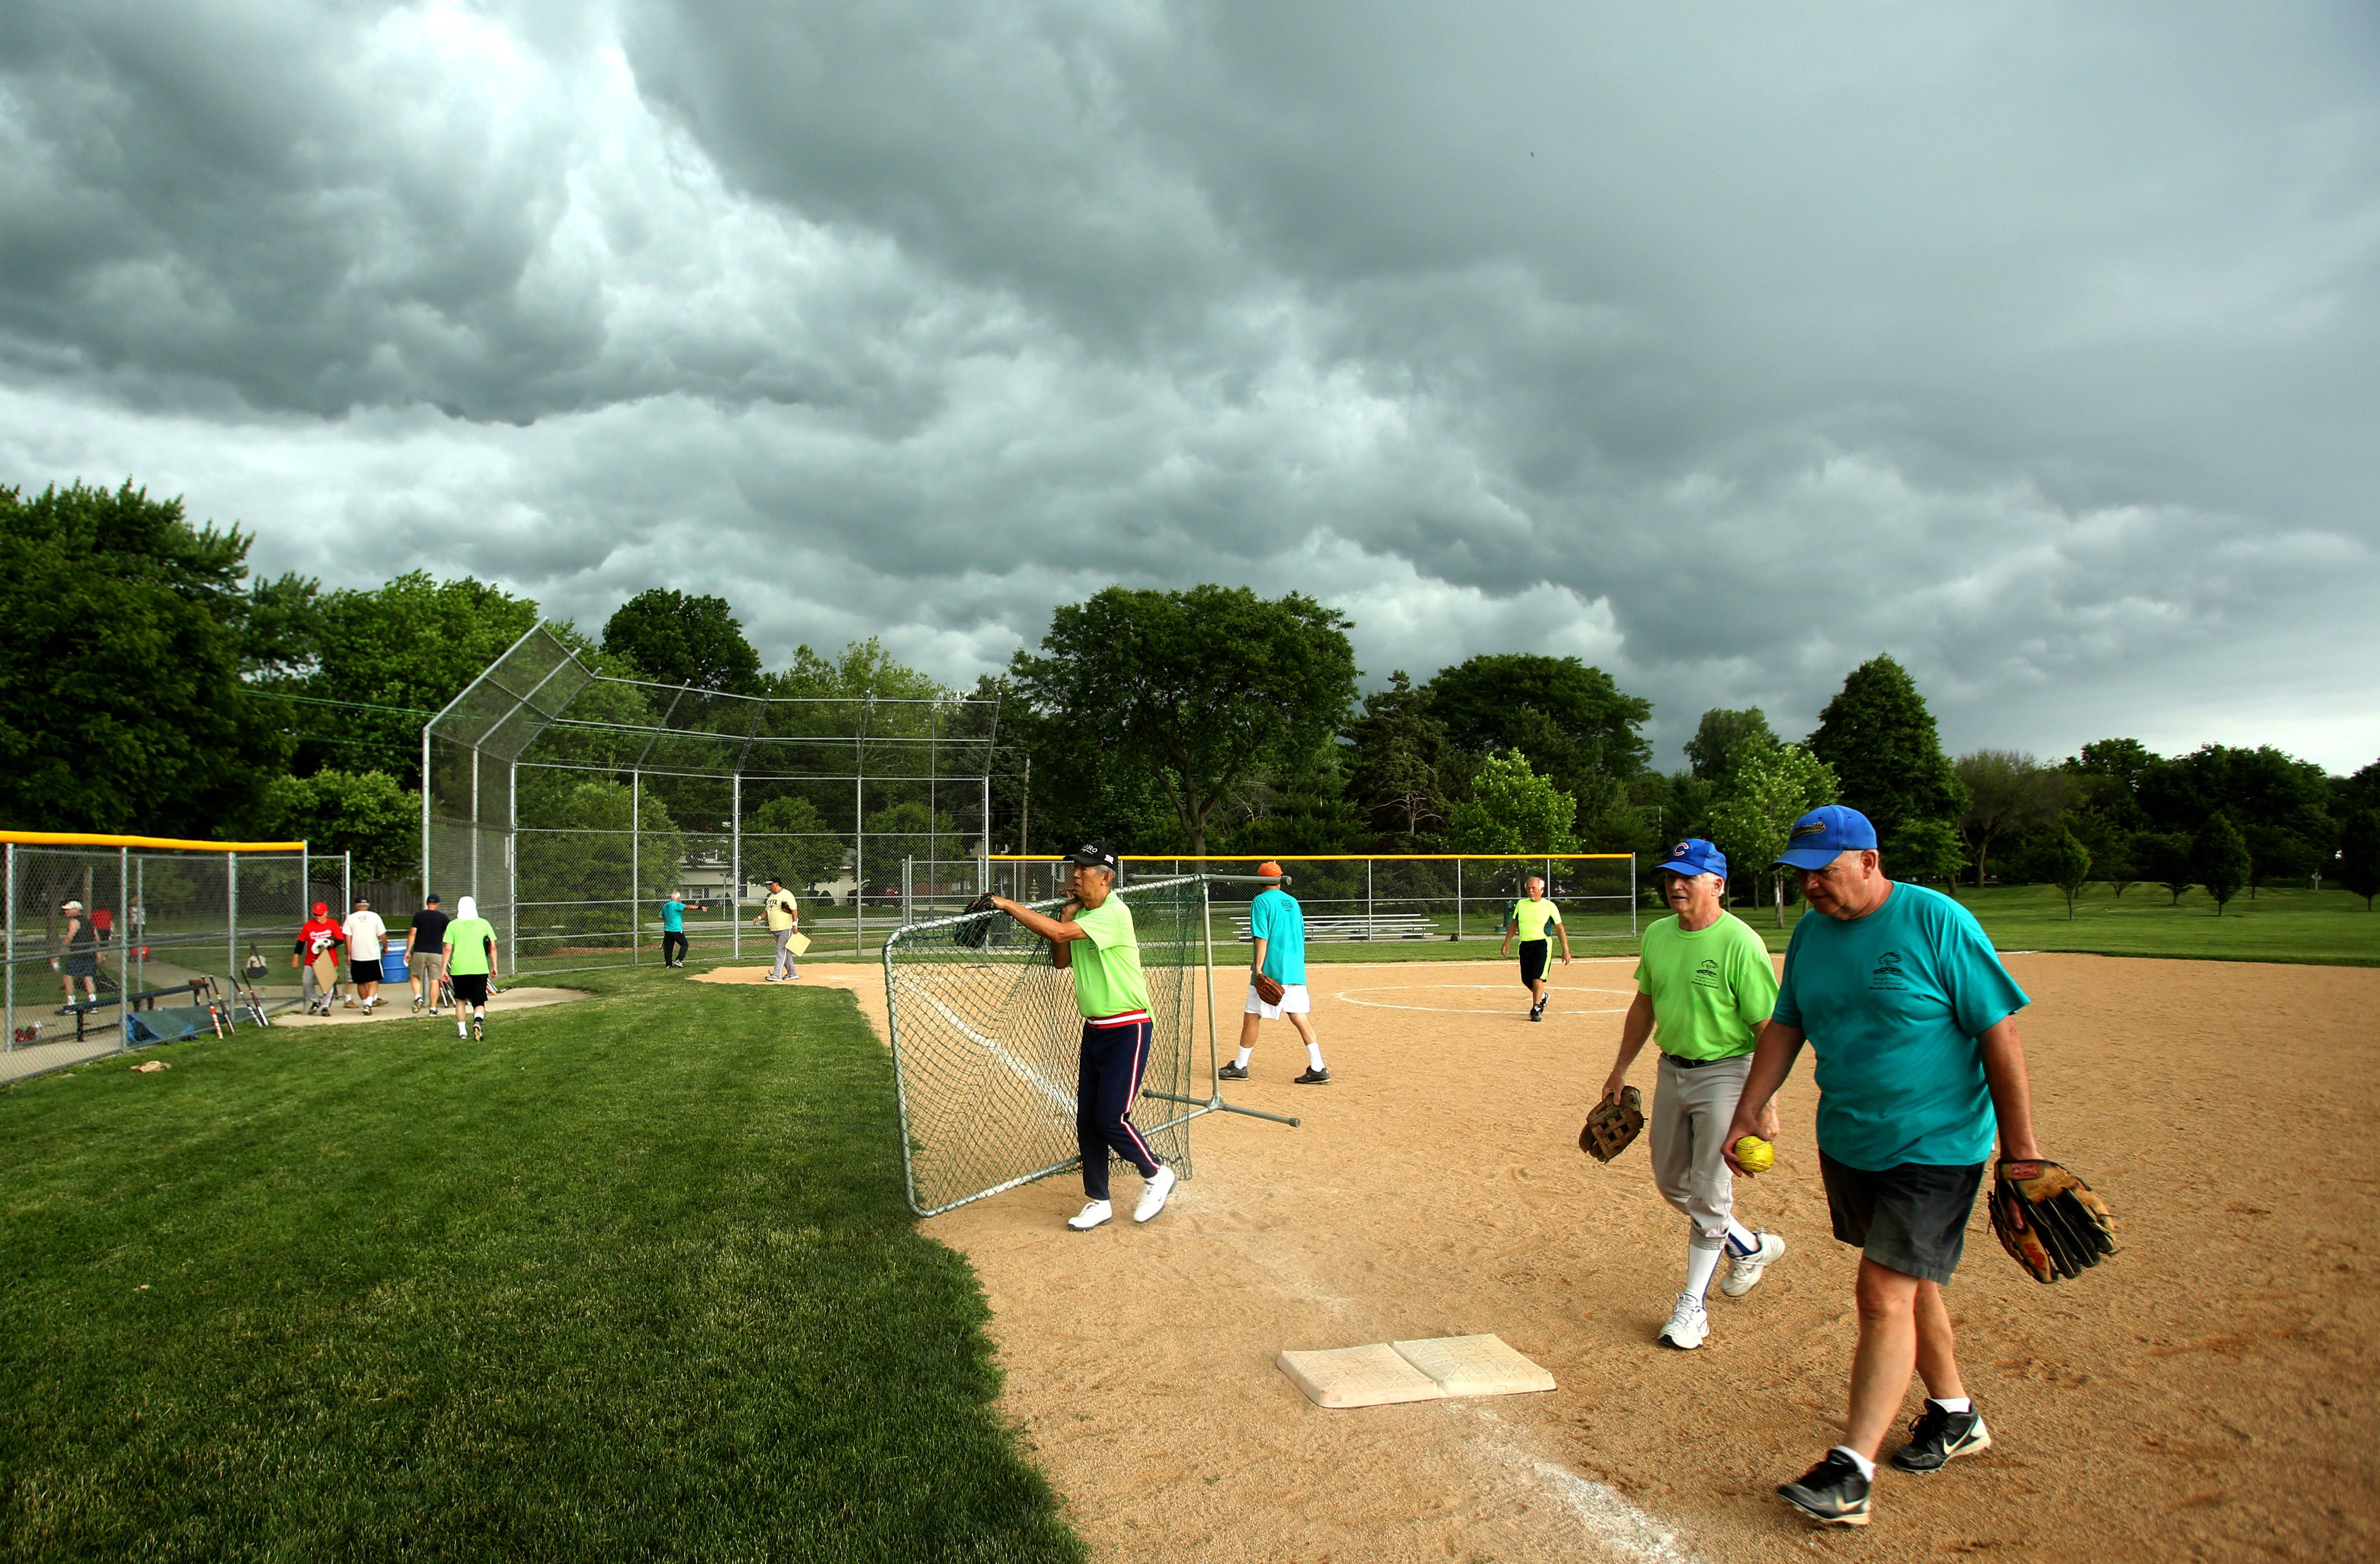 With severe thunderstorms threatening the area, a Naperville Men's Senior Softball League game is canceled at Gartner Park. Games are played Monday, Wednesday and Friday mornings.